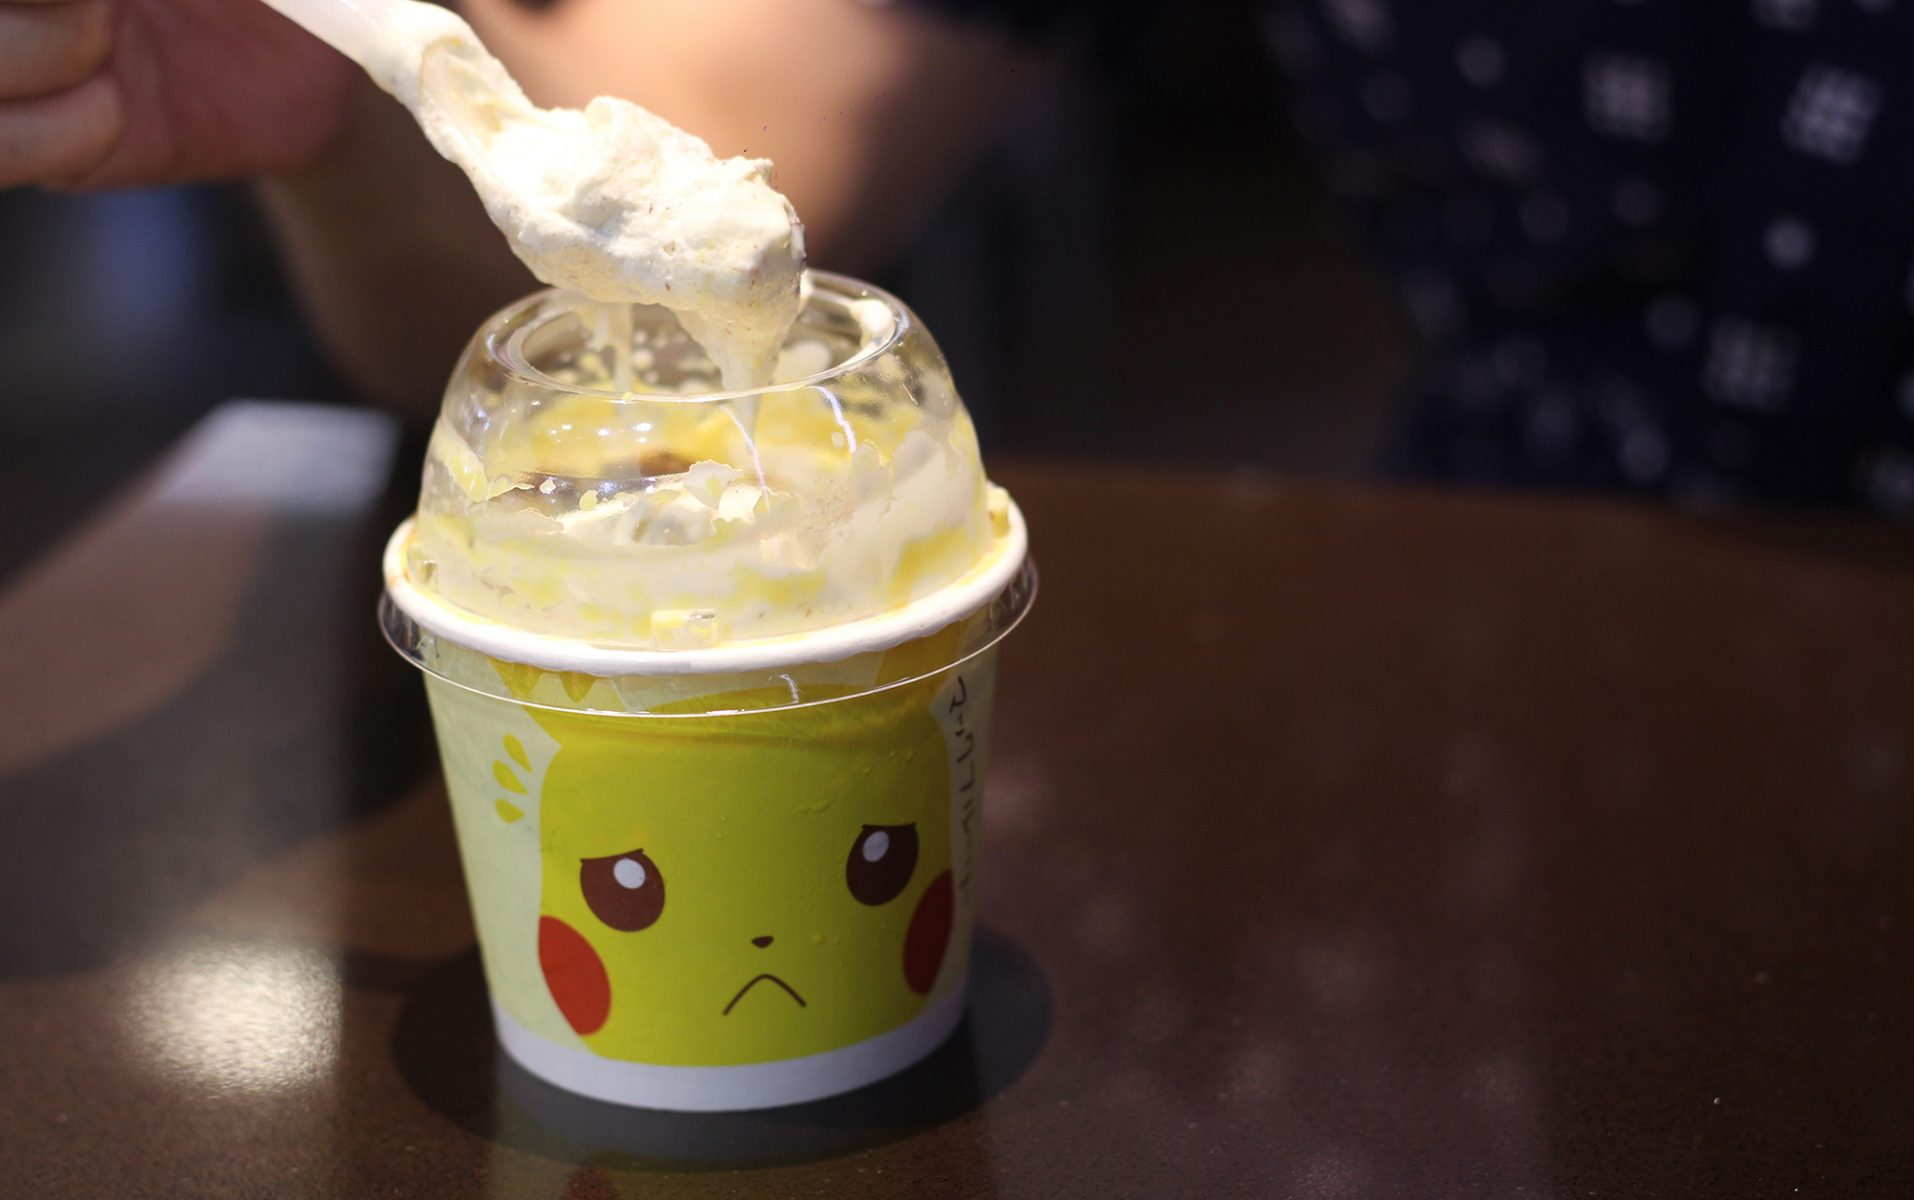 IMG_8120-1914x1200 Trying the Pikachu McFlurry in Japan